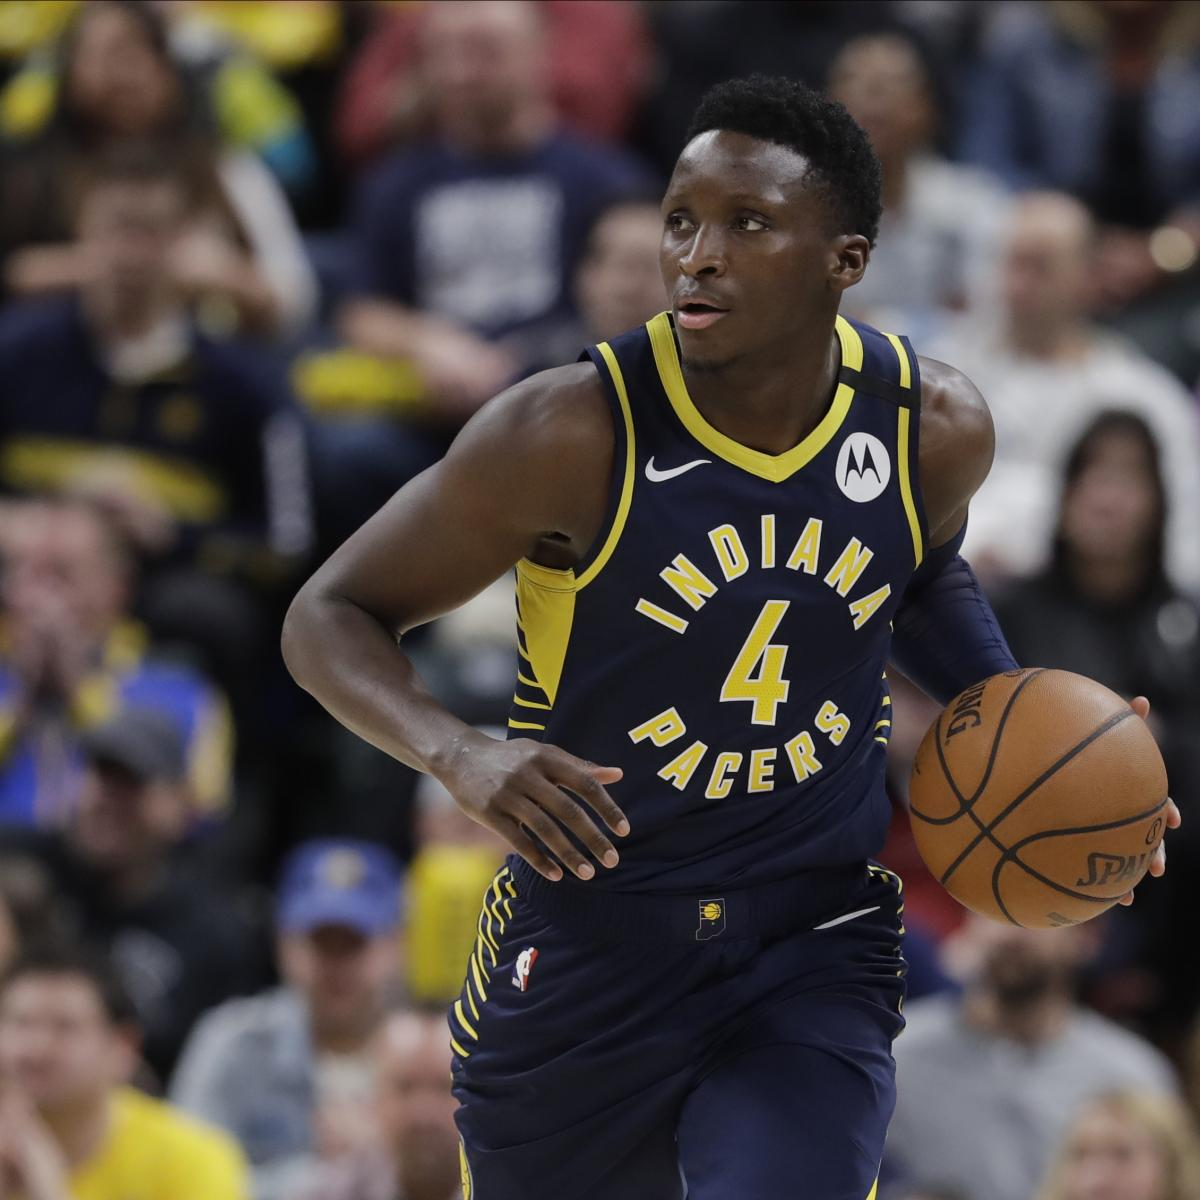 Pacers' Victor Oladipo Won't Play in NBA Restart to Focus on Injury Recovery